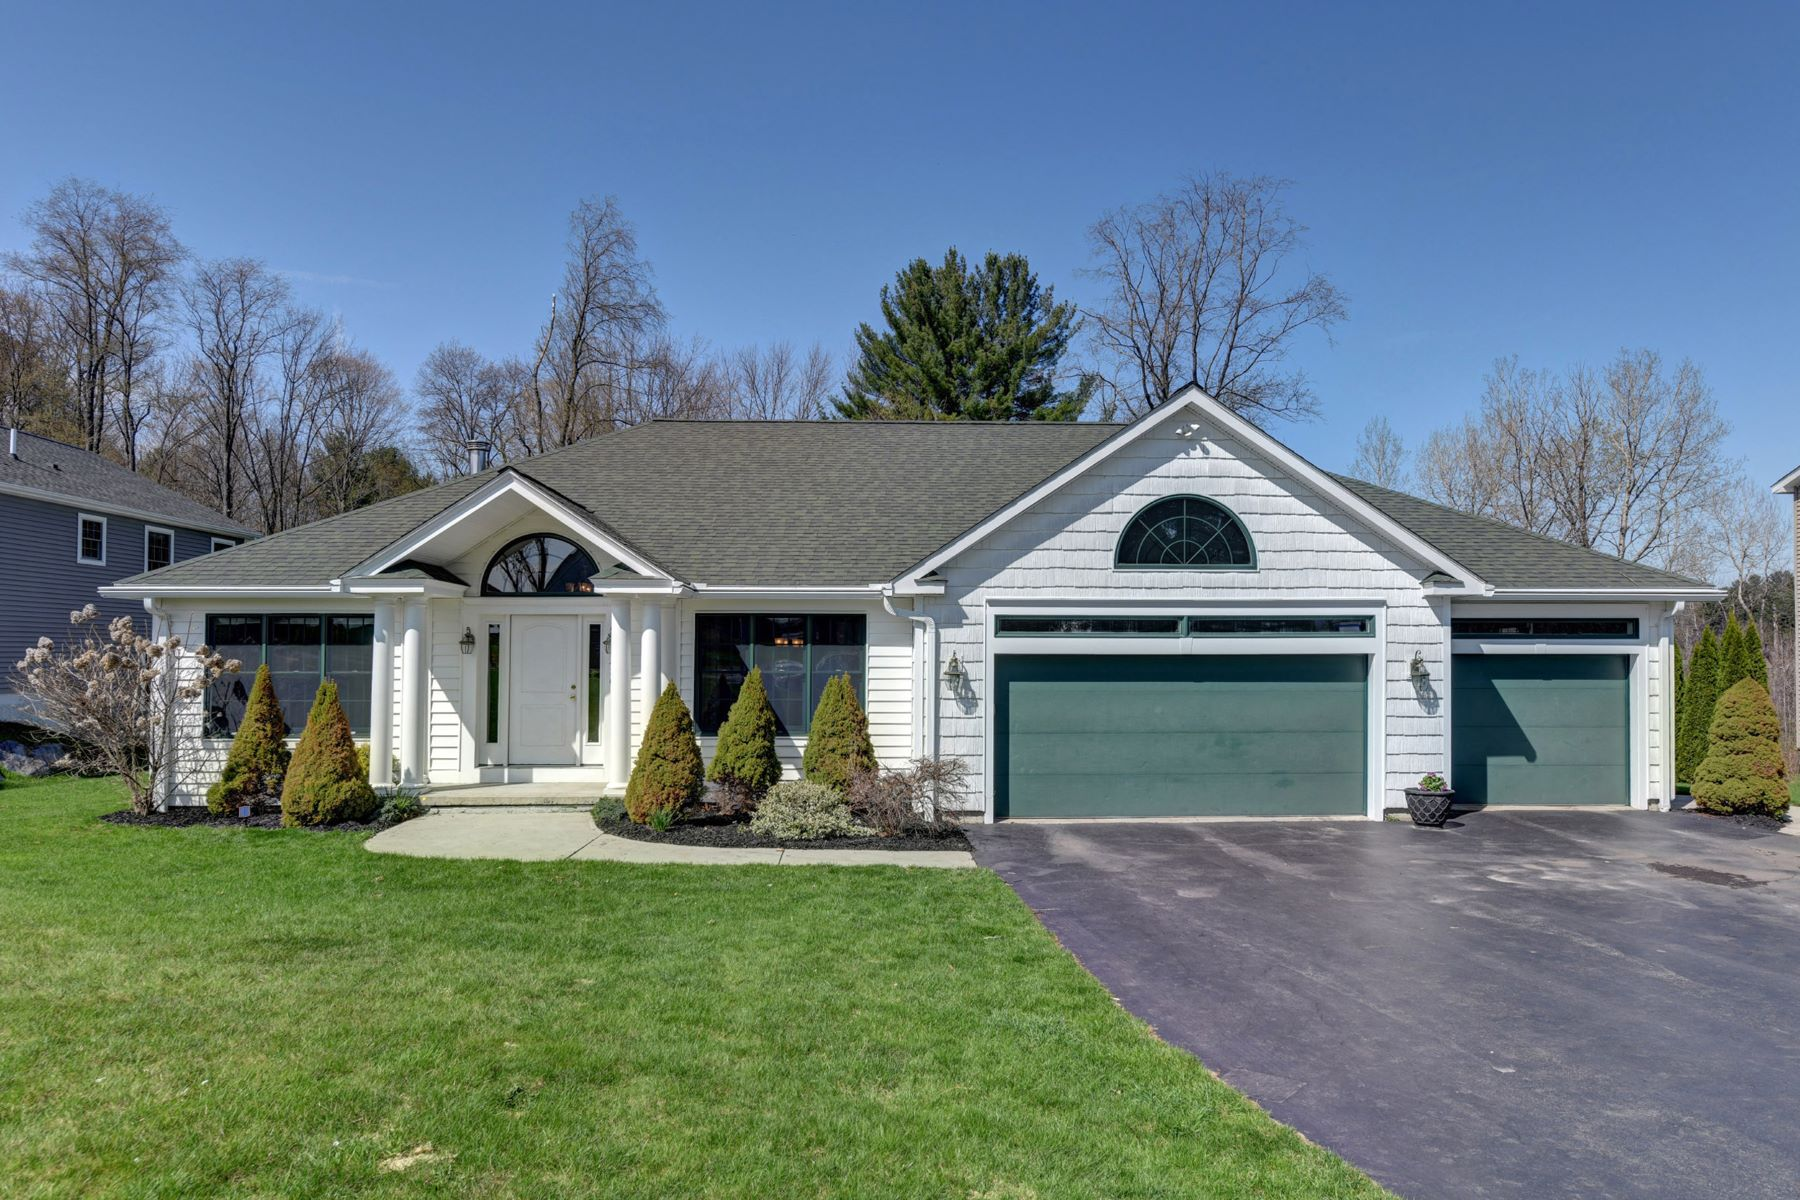 Single Family Home for Active at Custom Quality Built One Level Living 436 Gale Ave Pittsfield, Massachusetts 01201 United States